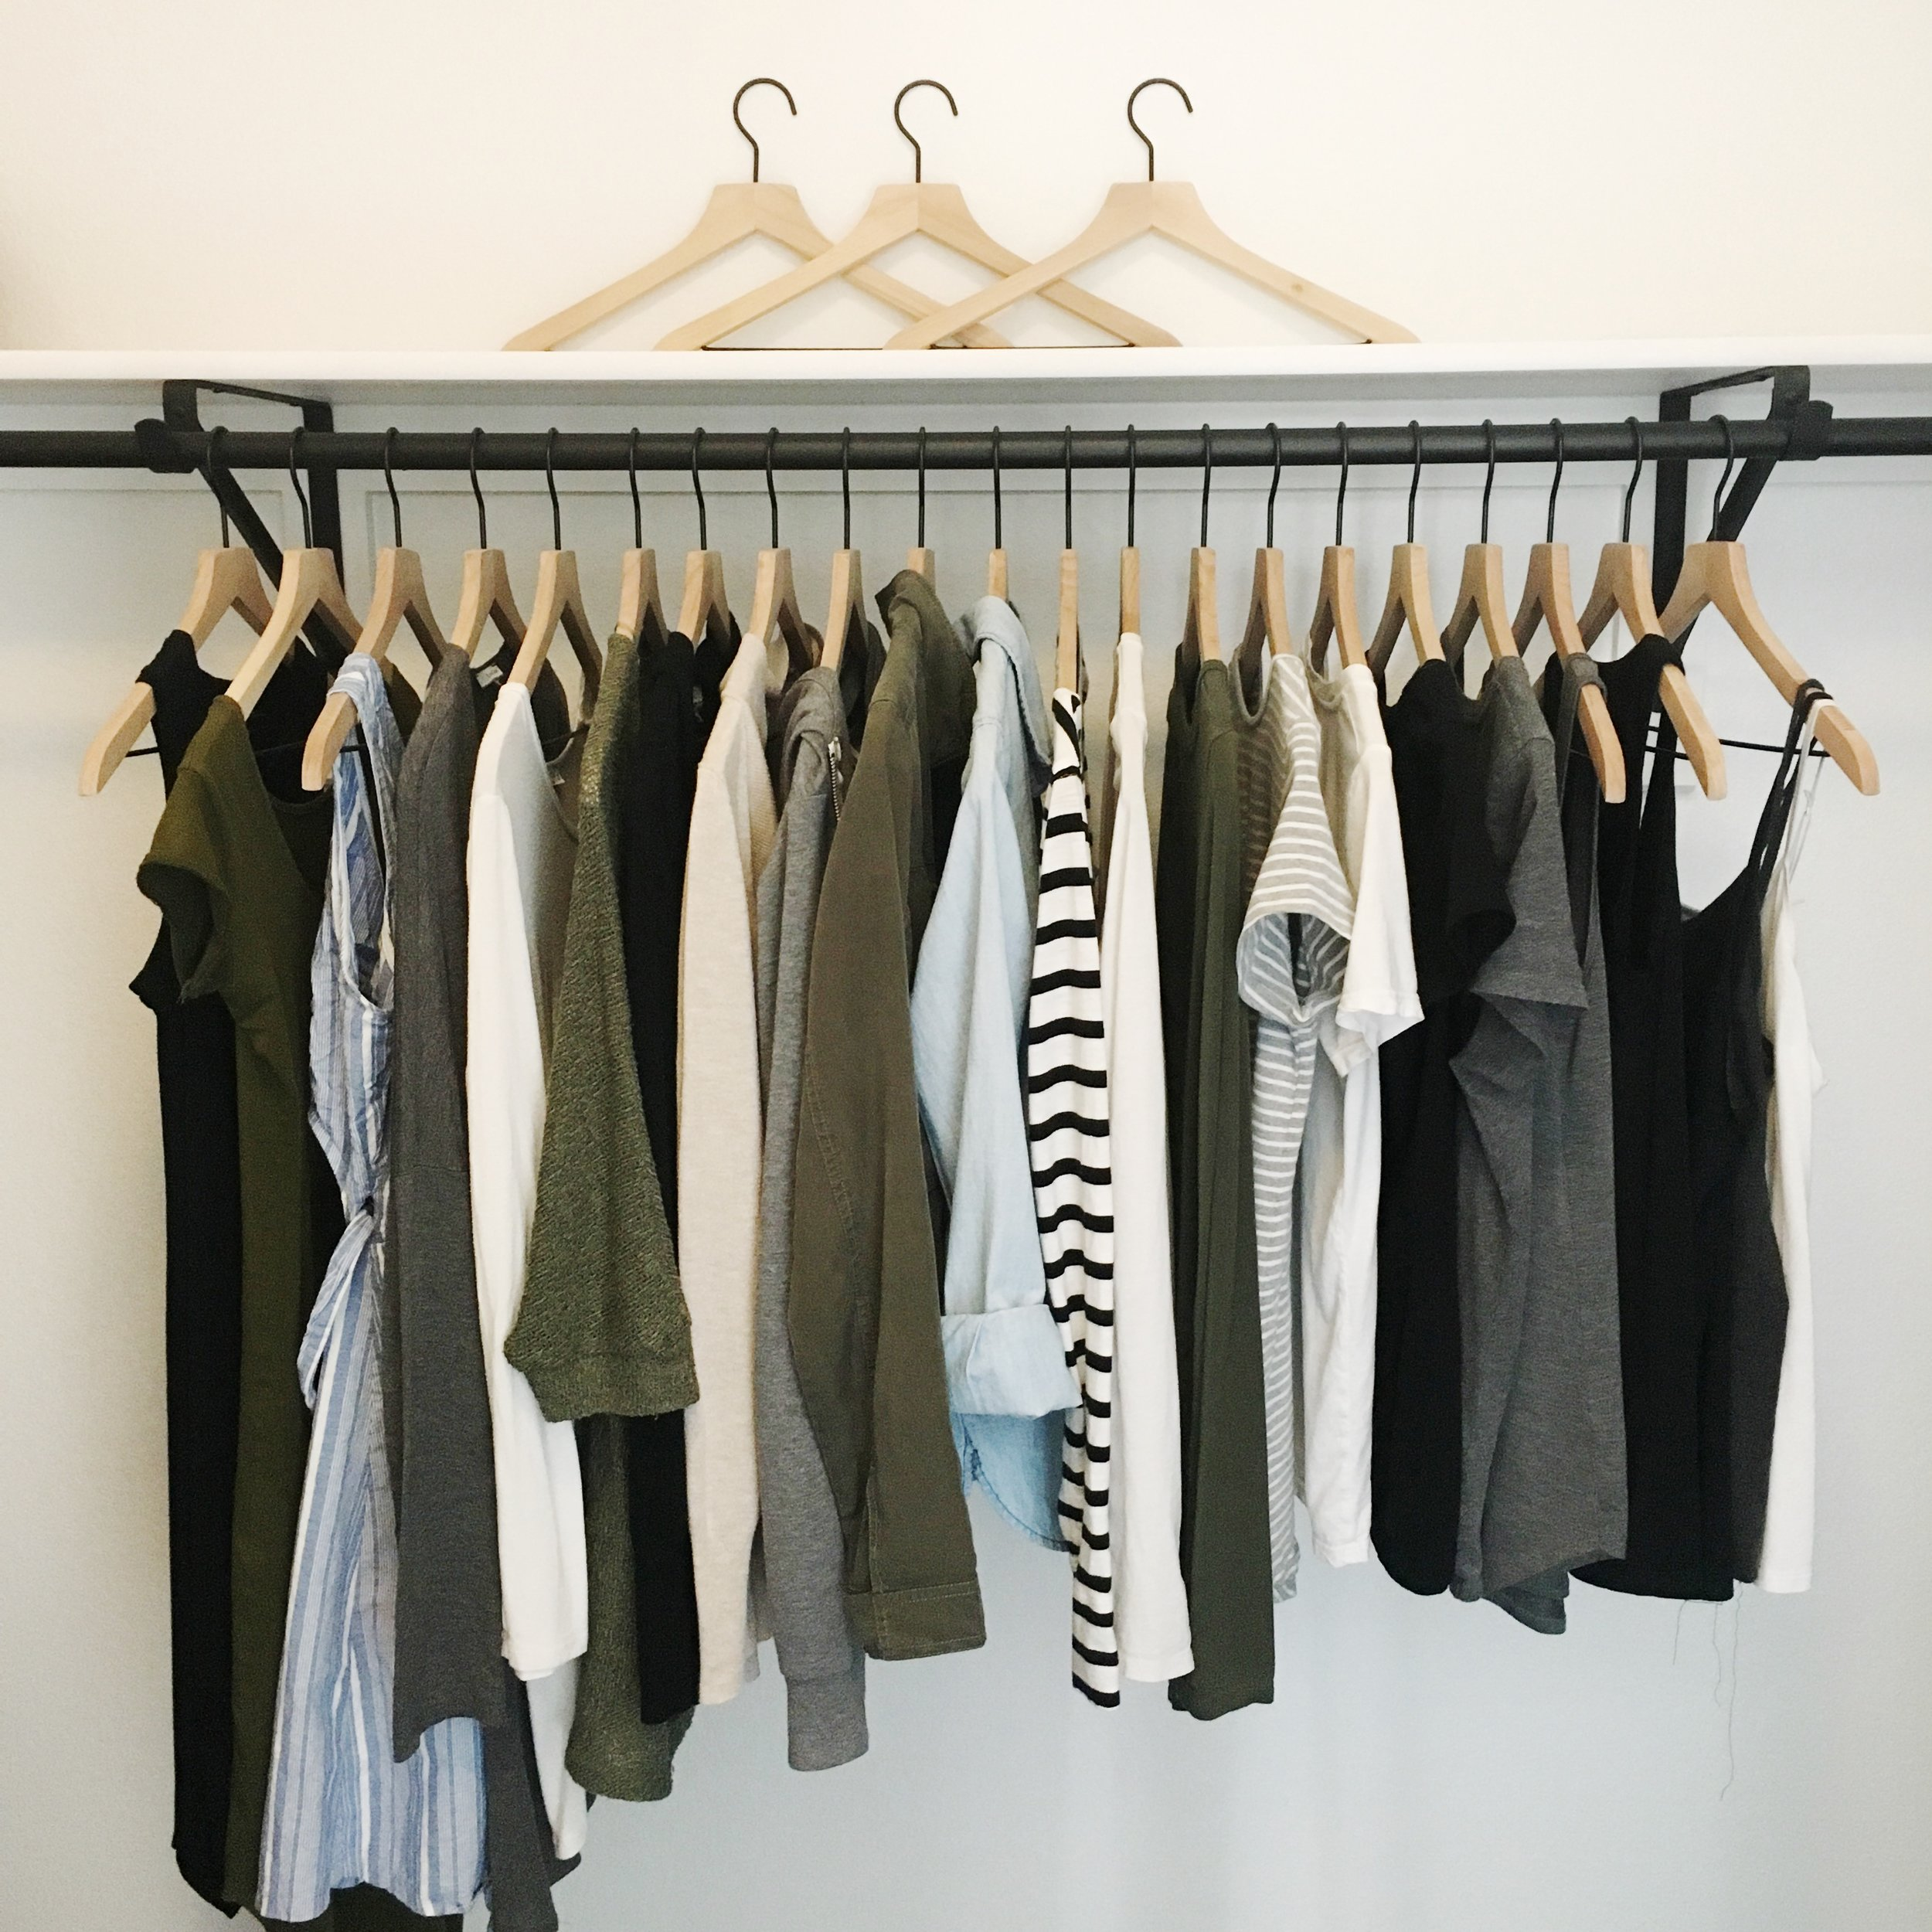 My summer capsule wardrobe, minus pants/shorts which are all stored in a drawer.